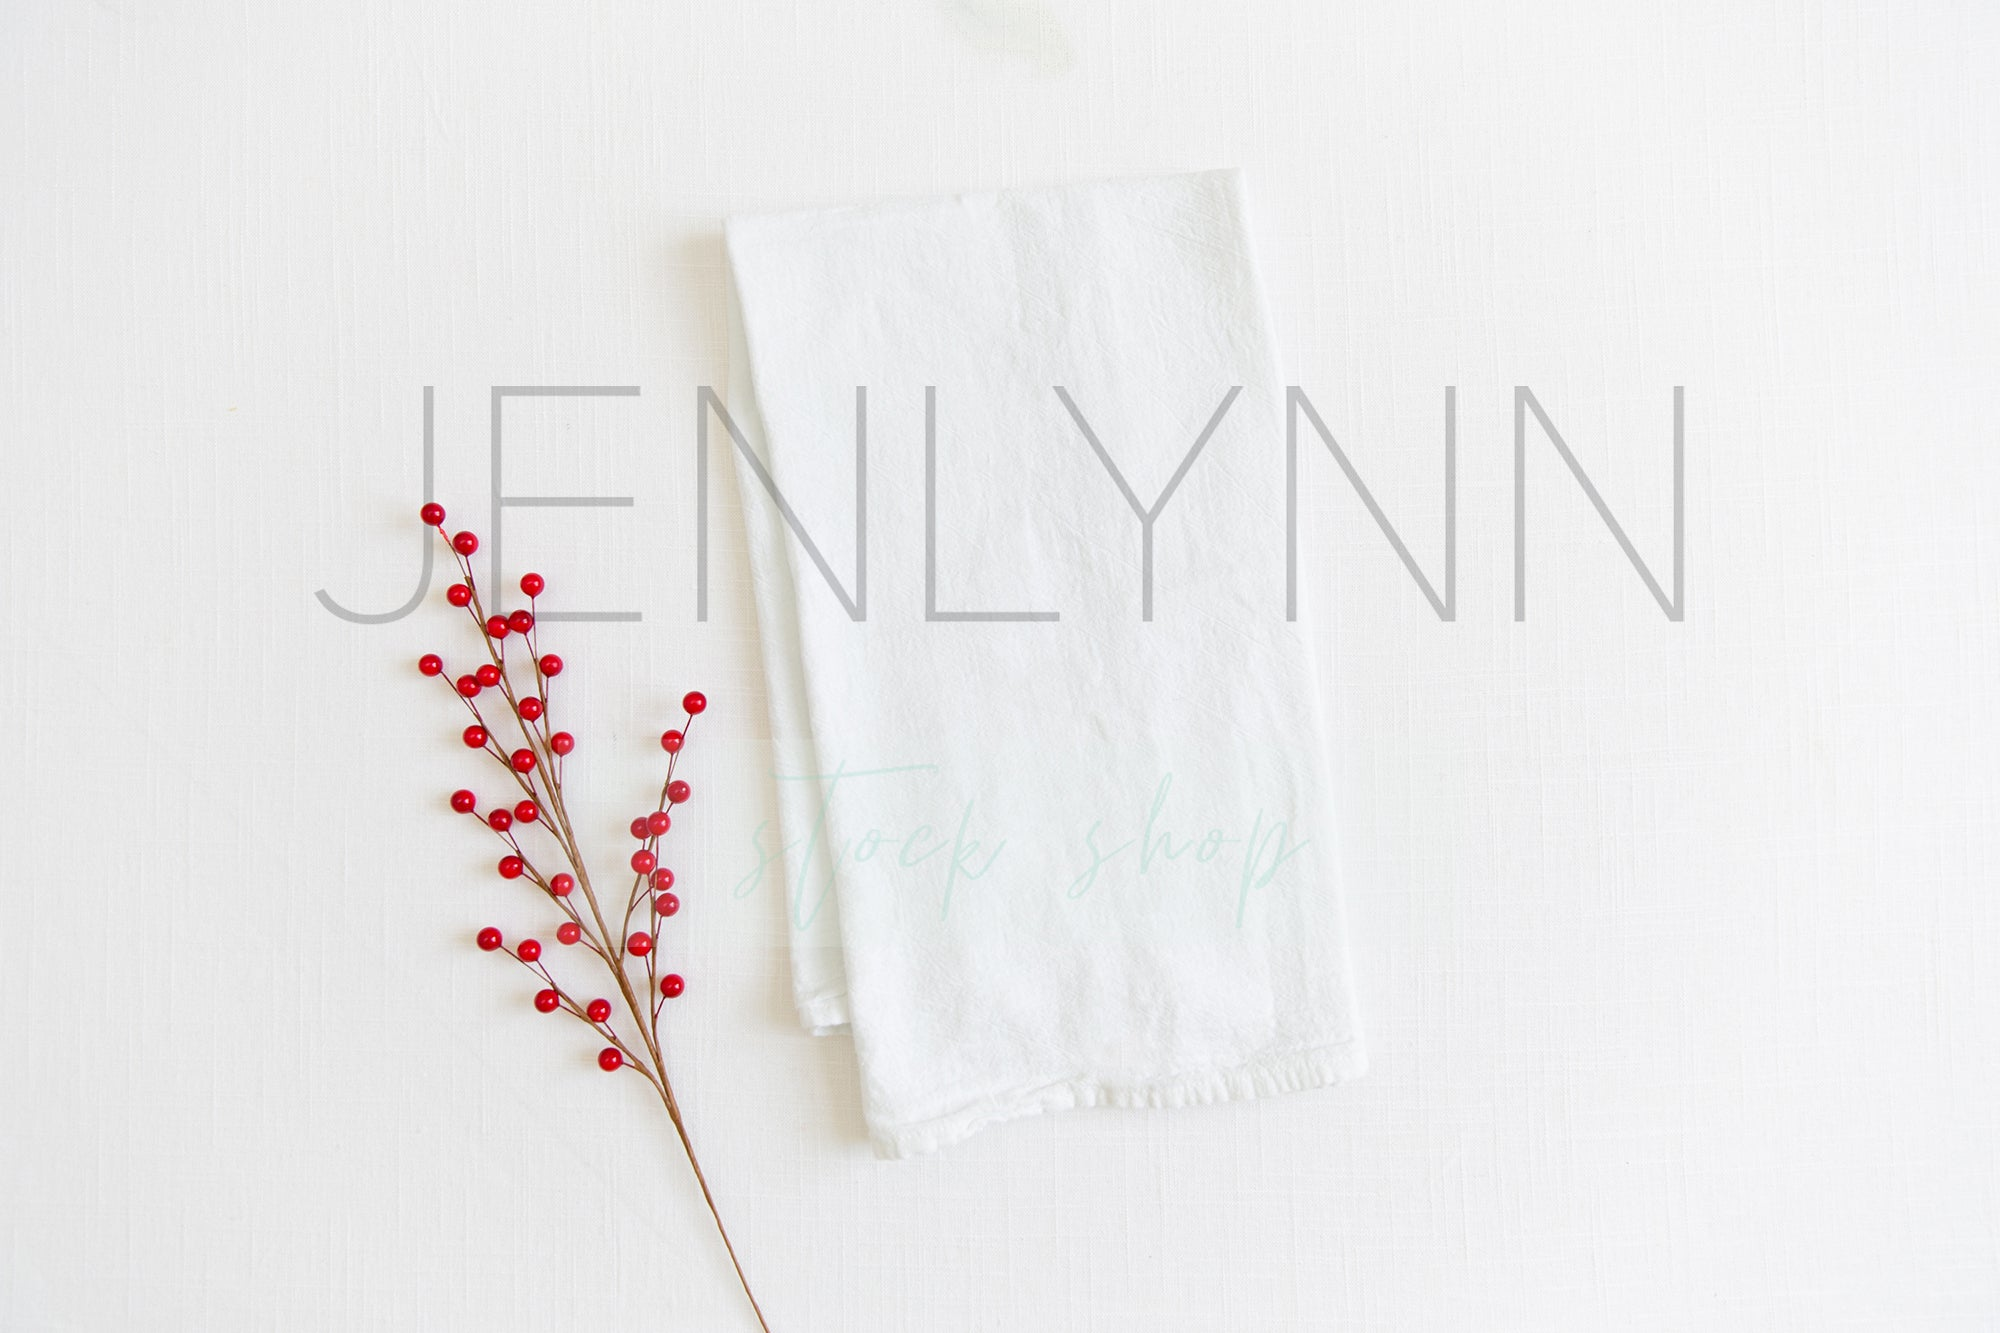 Christmas Kitchen Towel Mockup #2 JPG